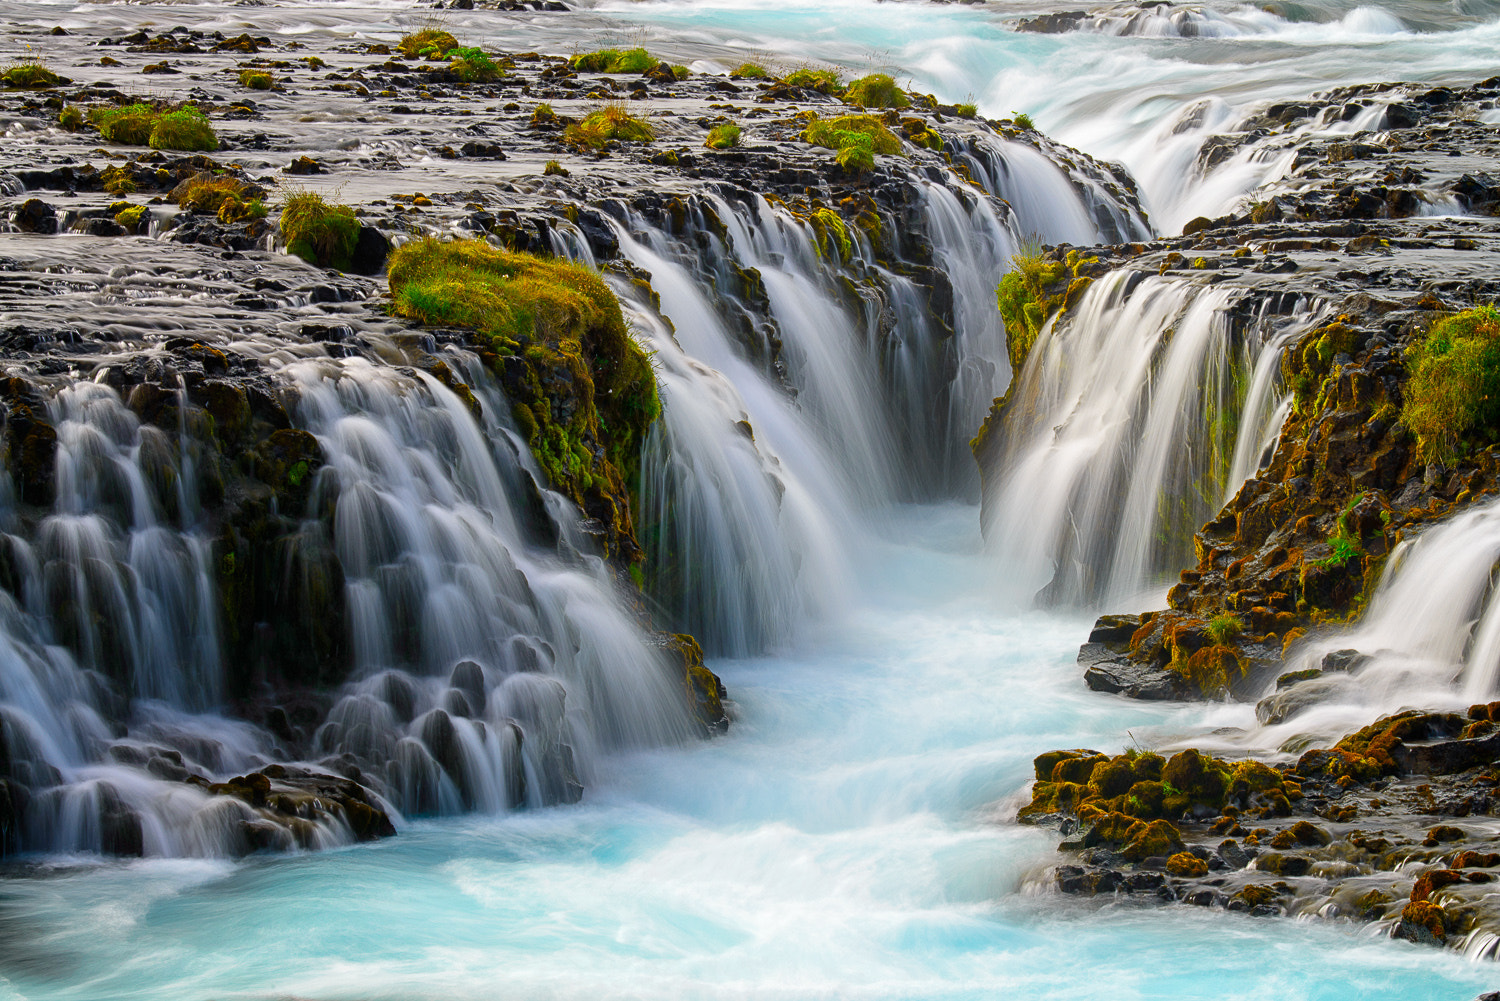 Photograph Glacial Waters by Glenn Barlow on 500px